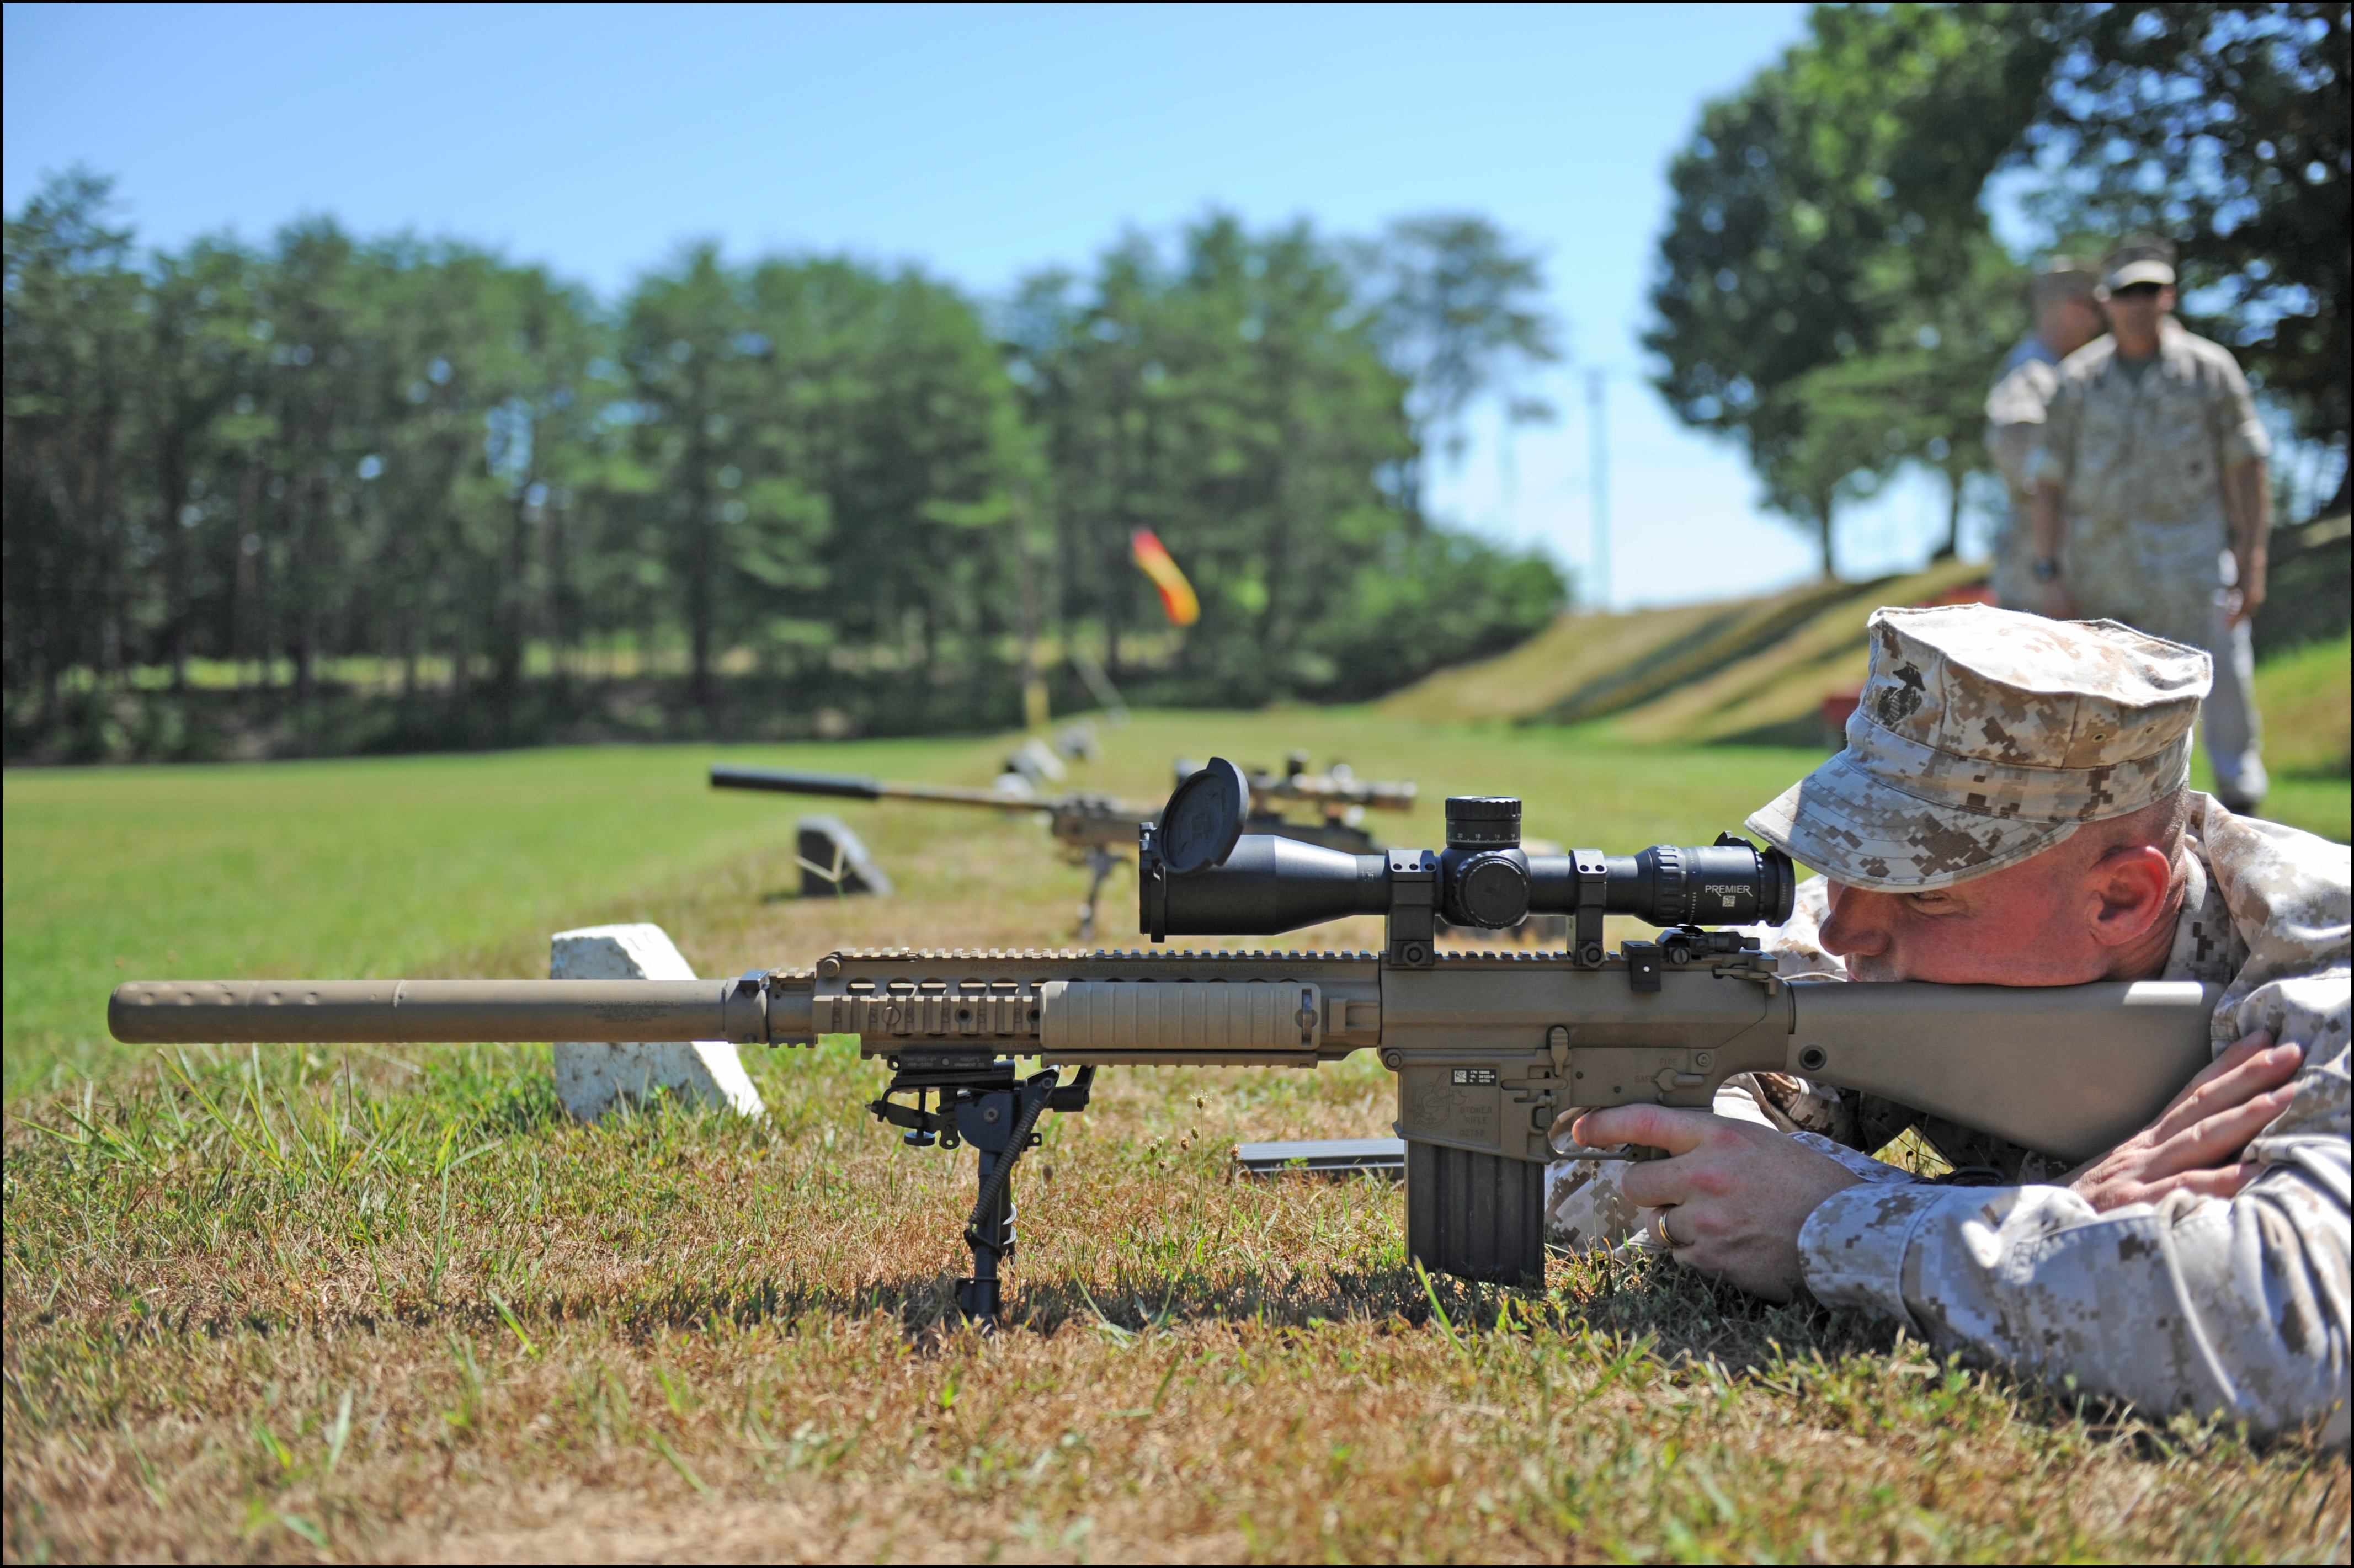 Introducing The Army S New Lethal Sniper Rifle The